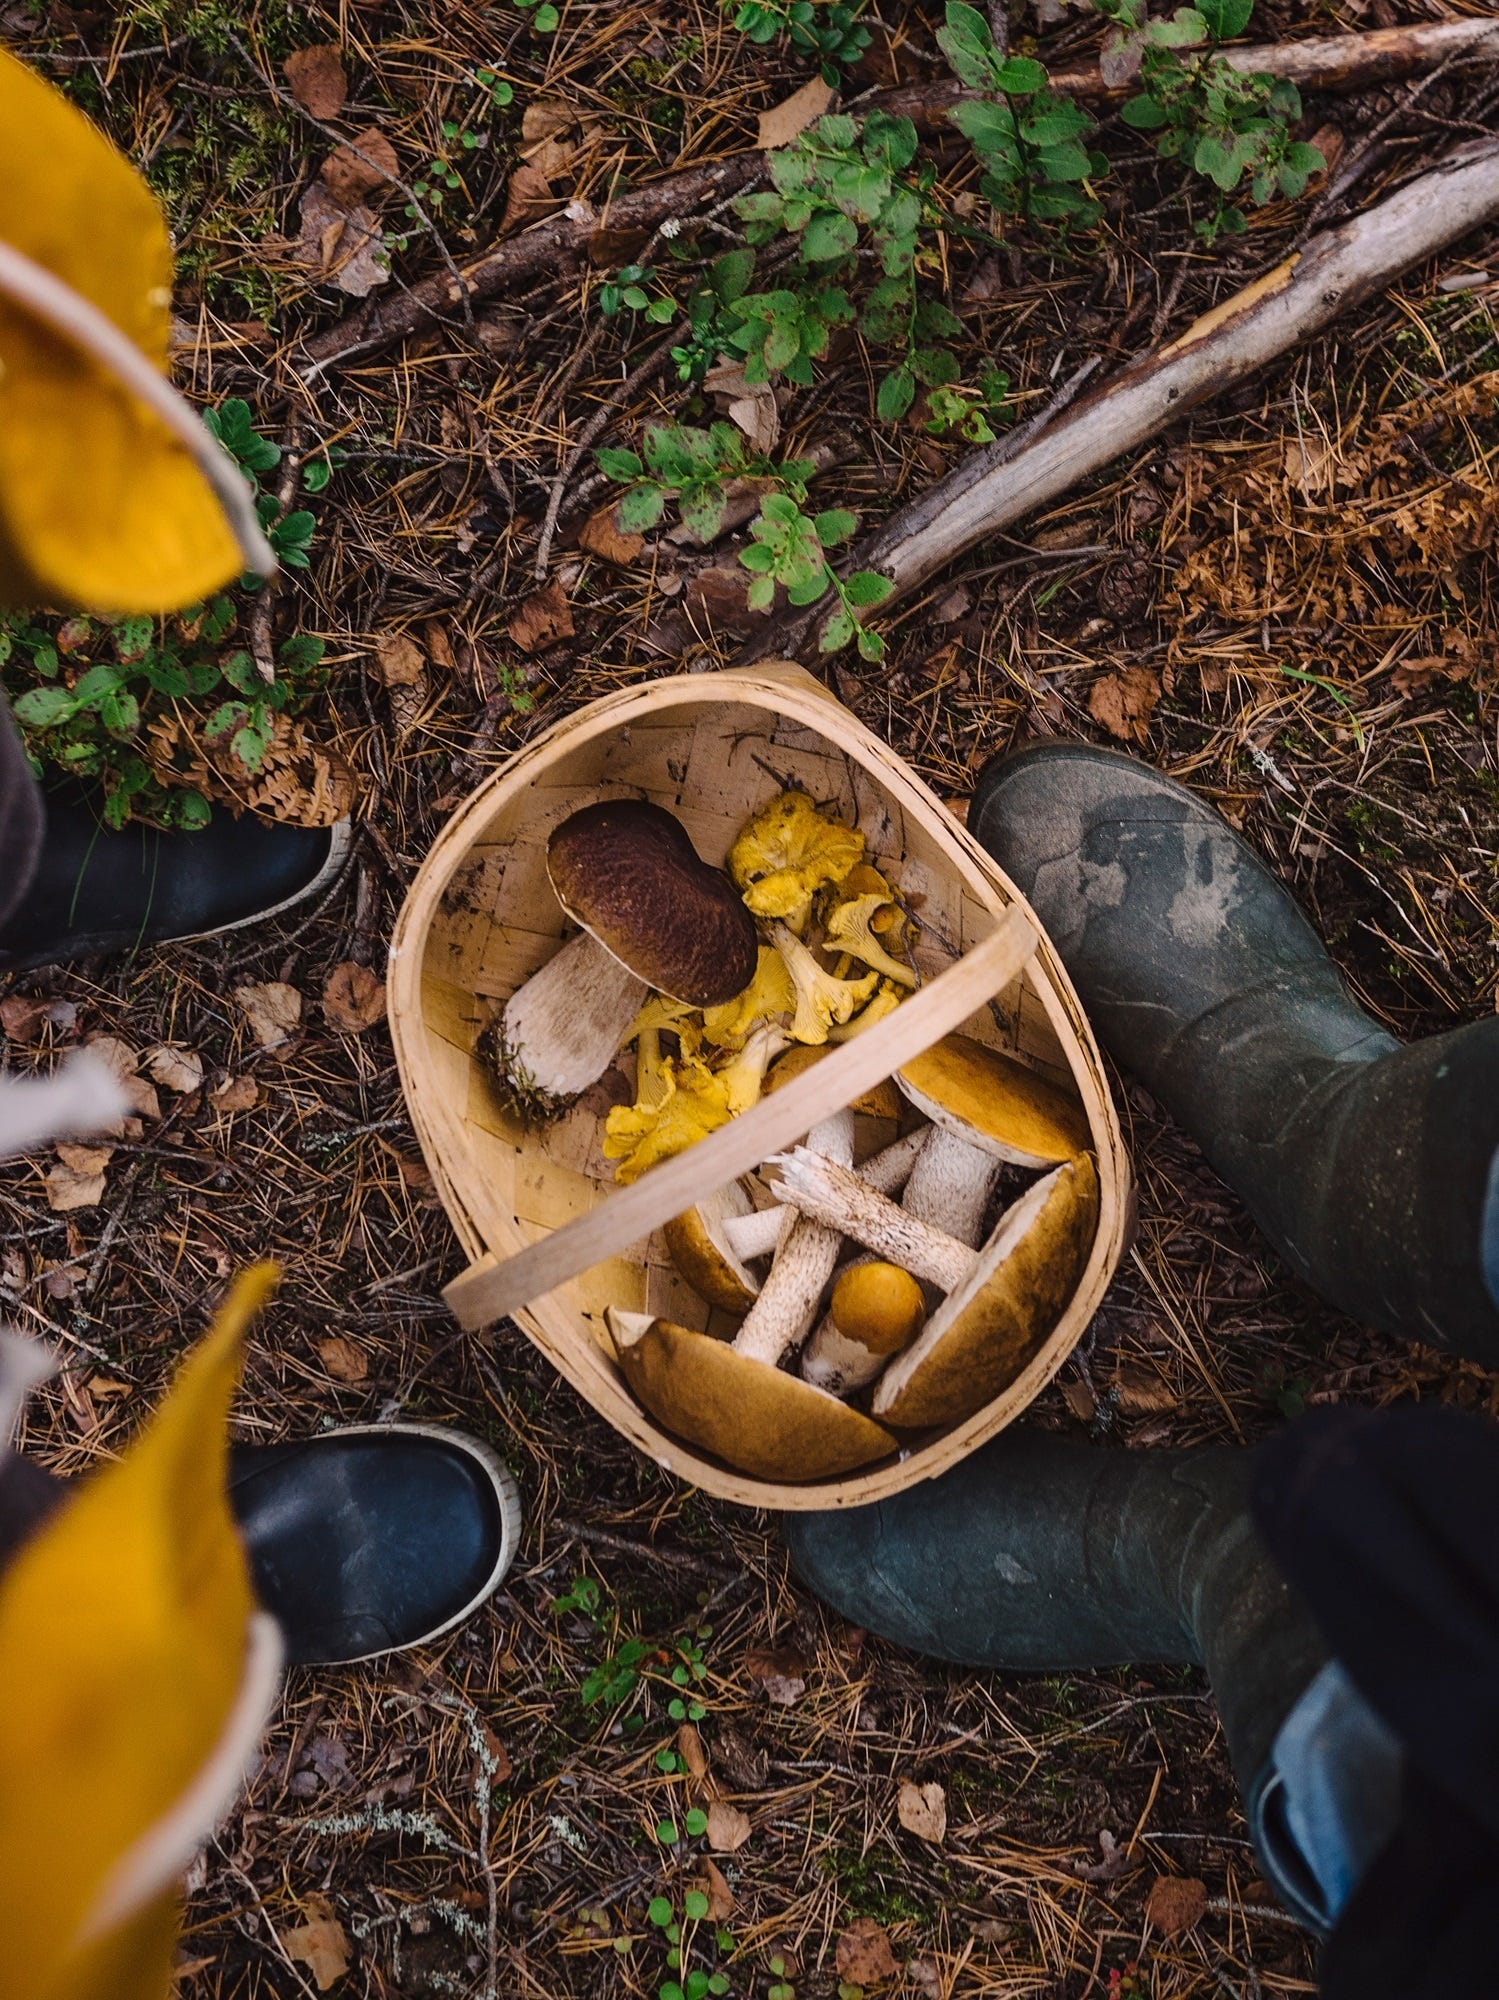 Harvesting wild mushrooms has become part of the culture in Finland.